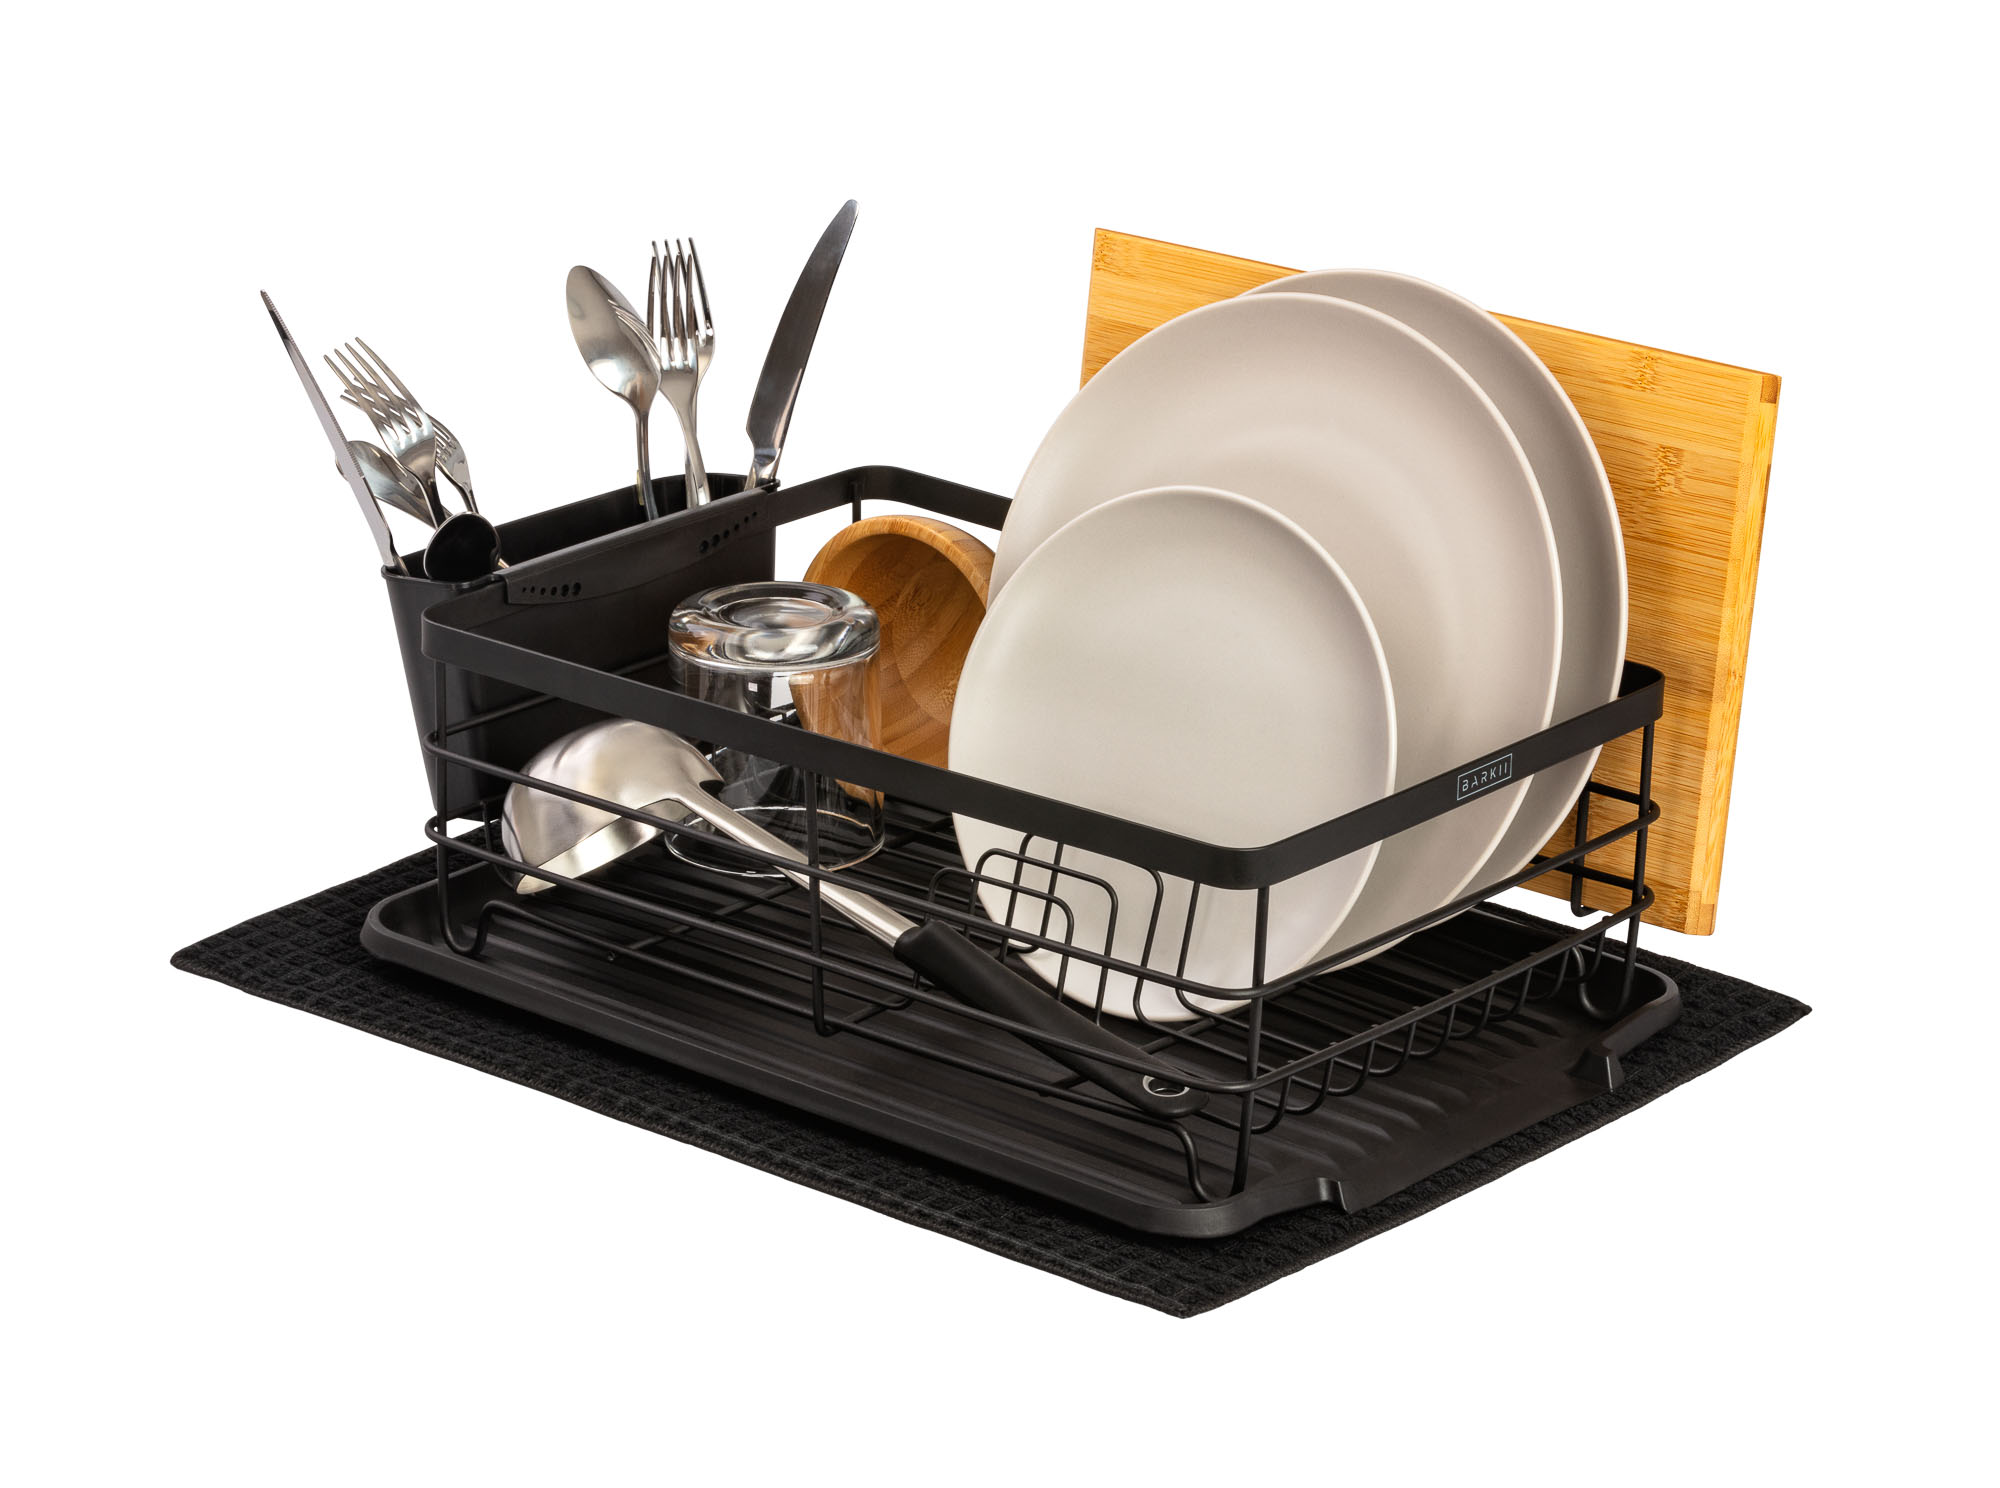 Dish Rack Barkii with casual beige dinner set